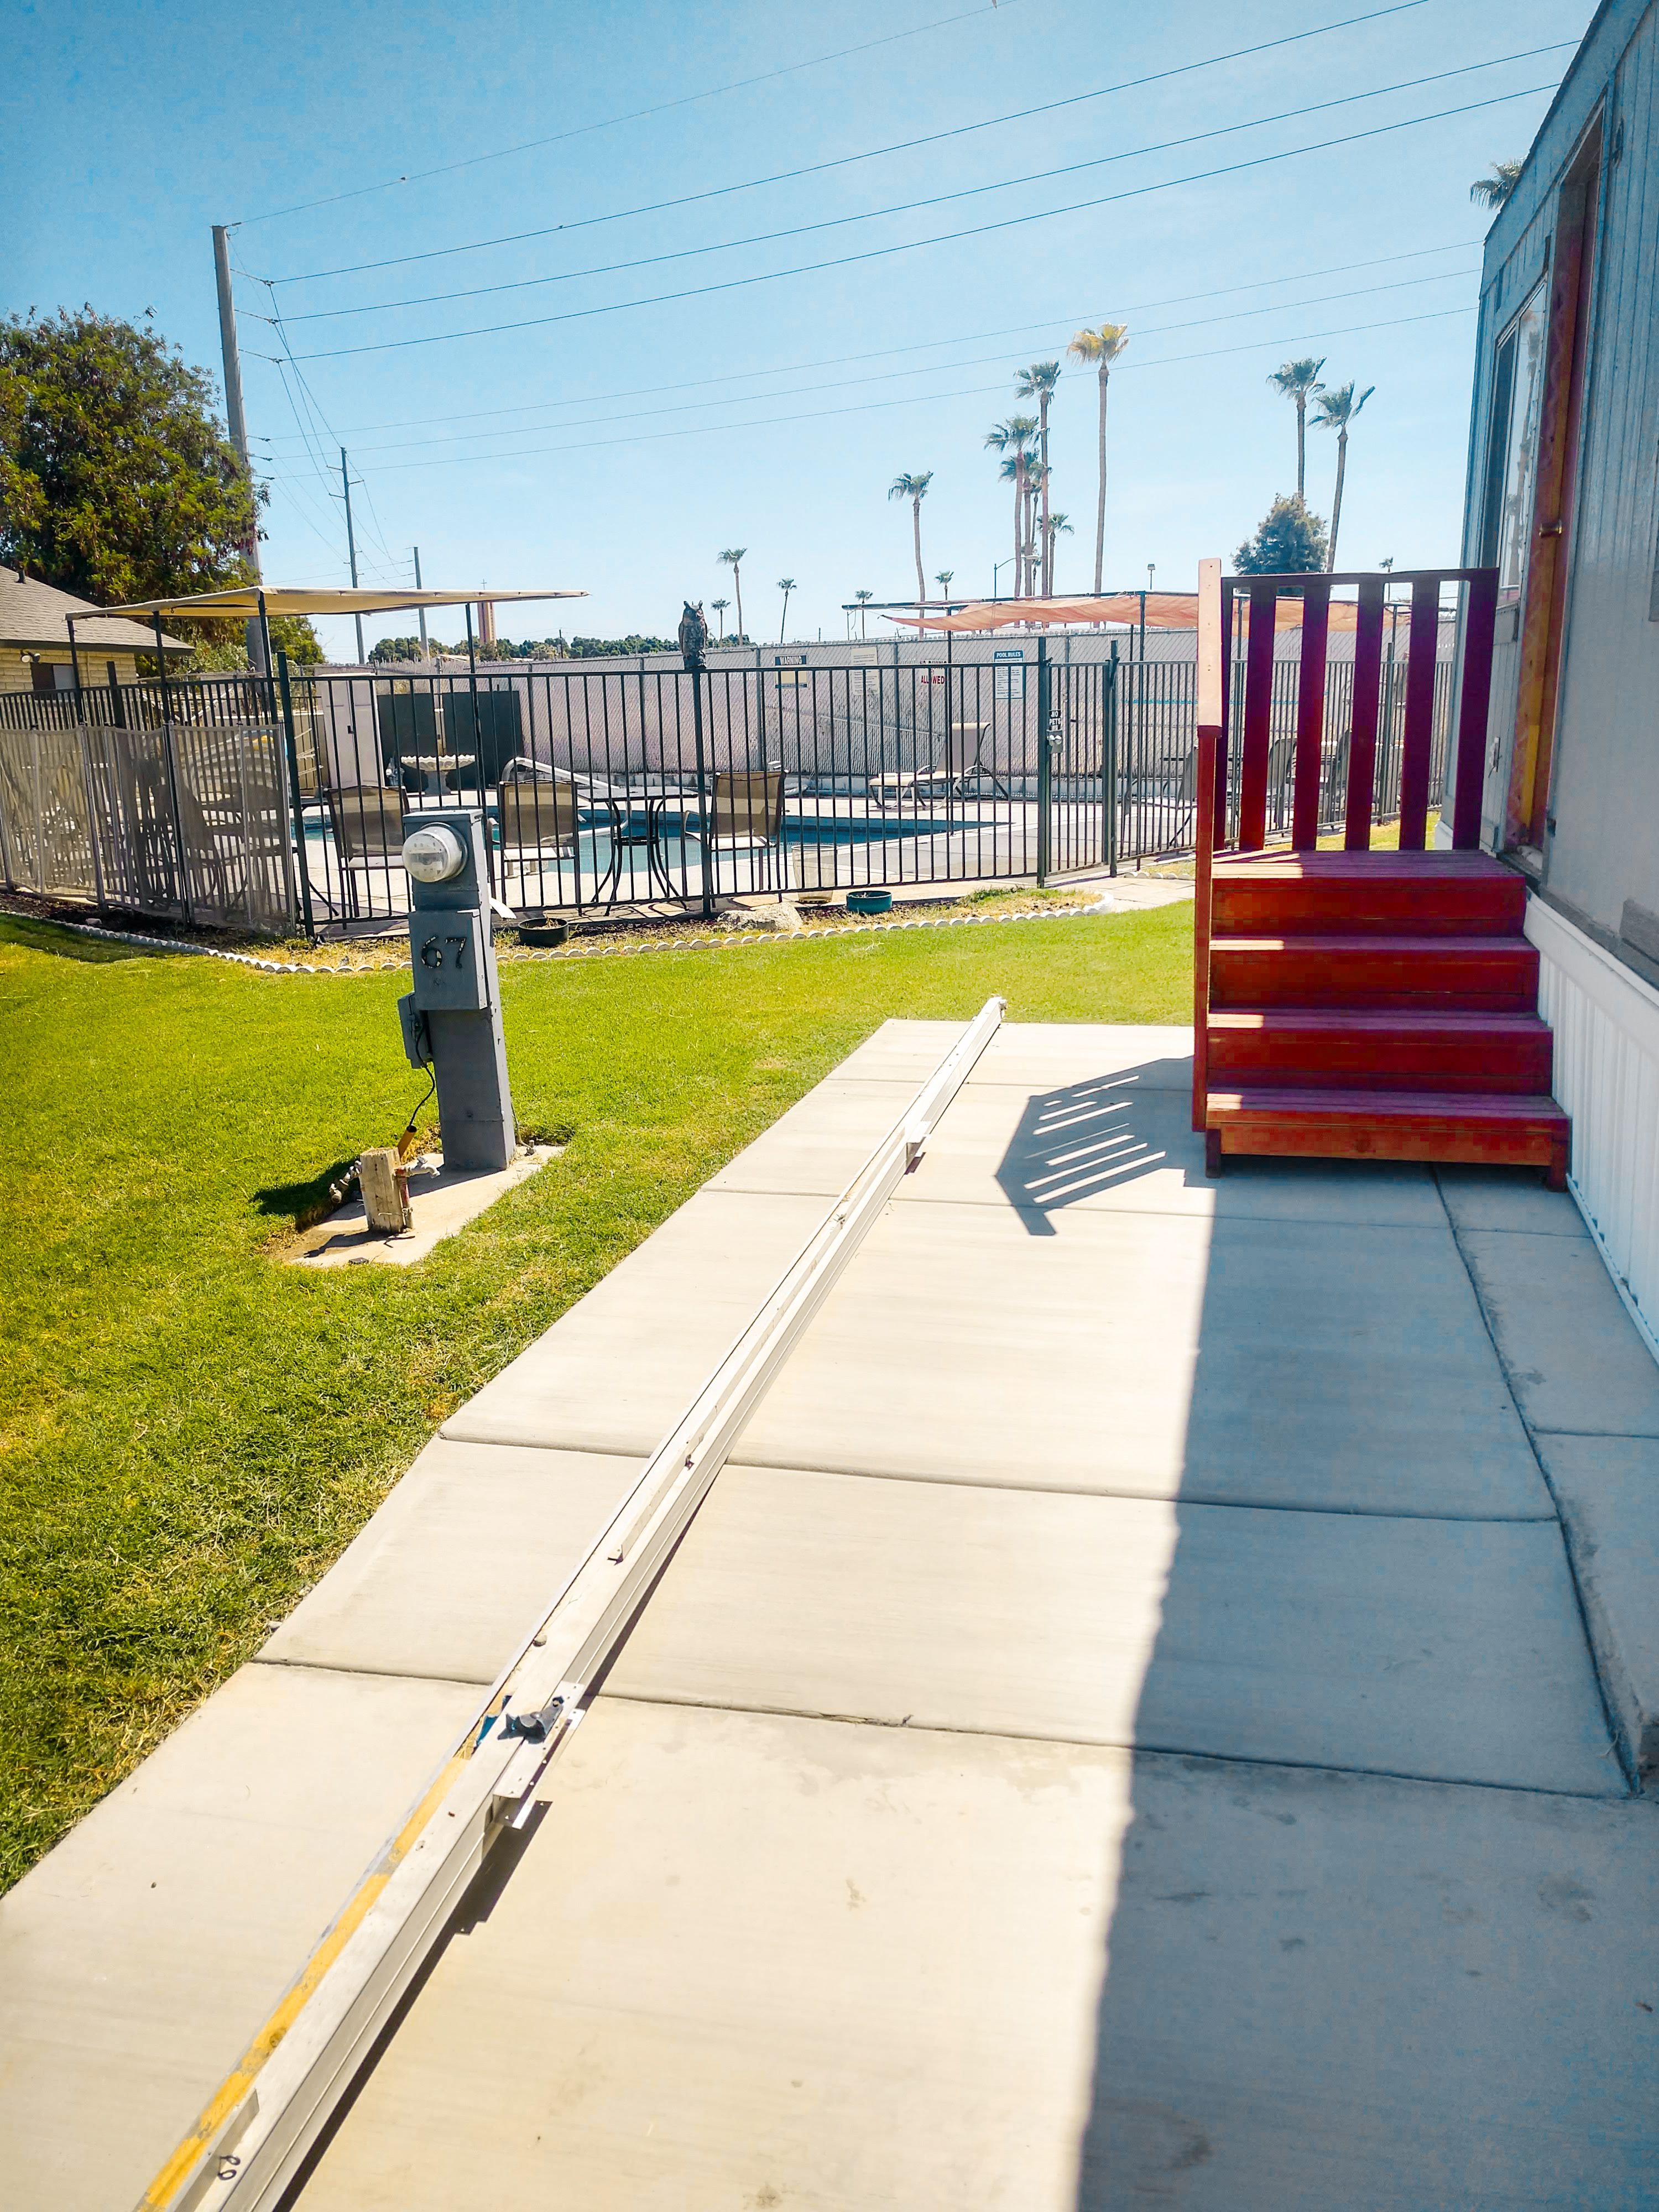 Ambient surroundings for seniors at a top RV park in Yuma